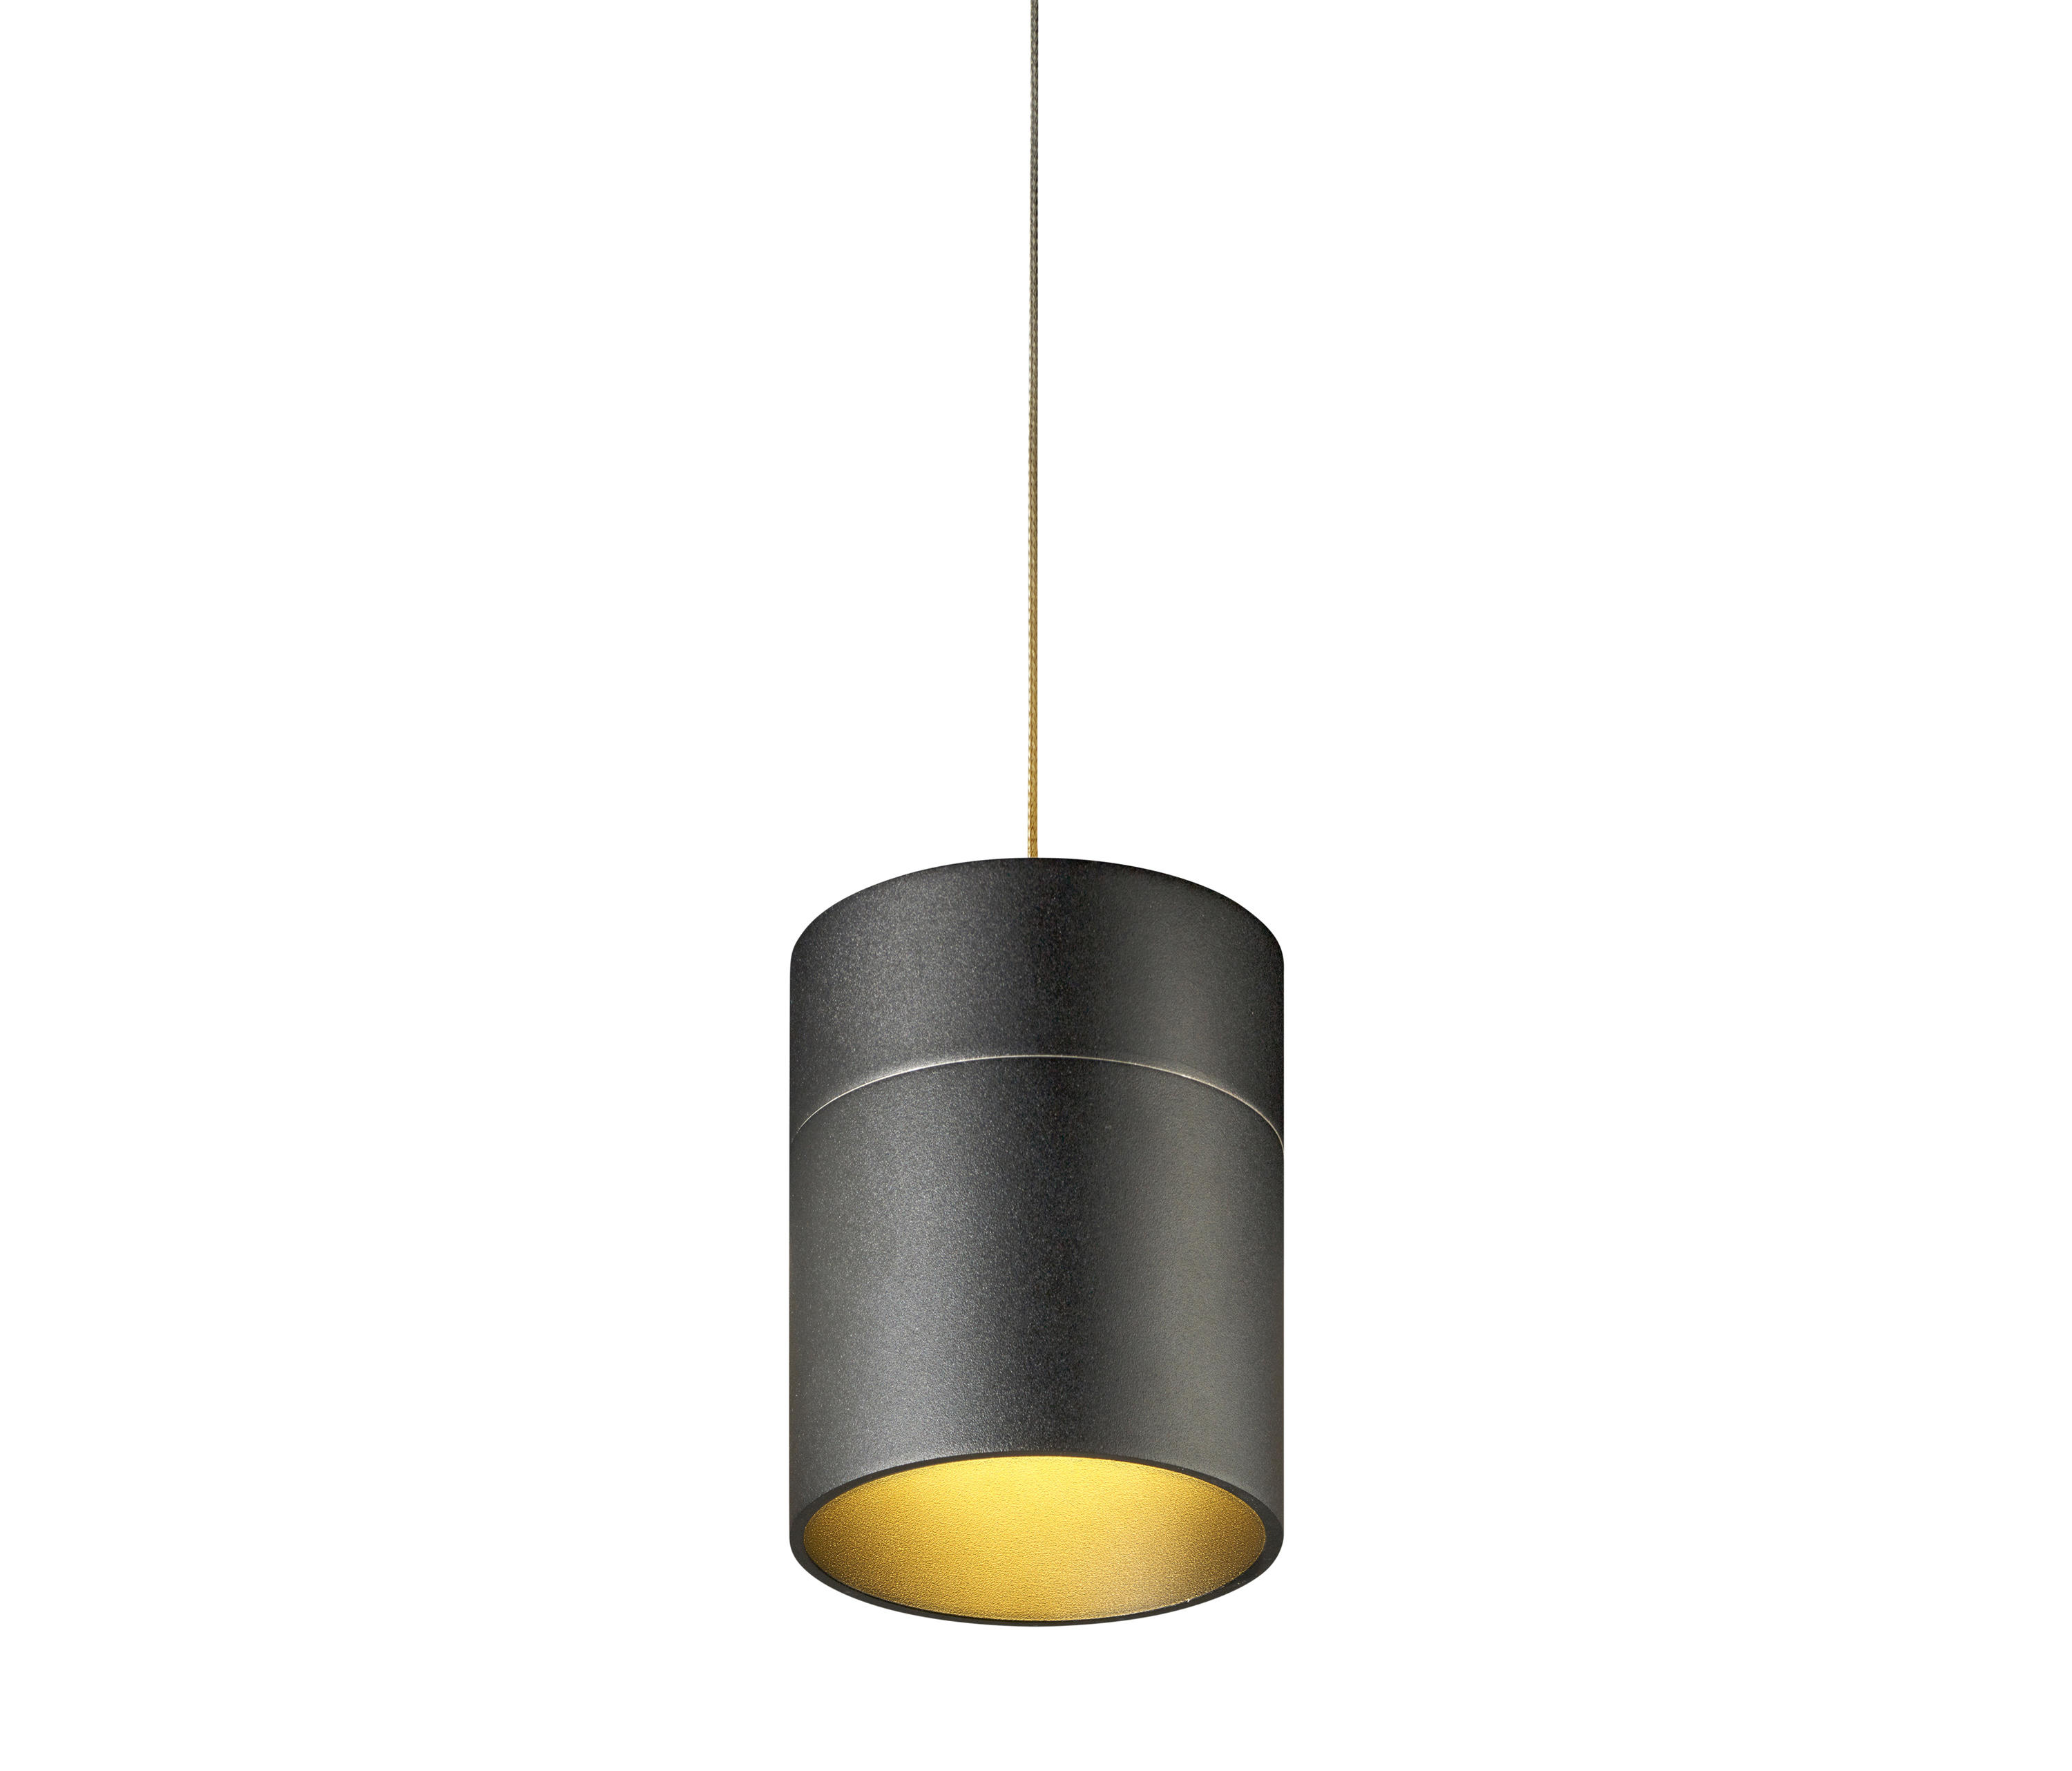 tudor pendant luminaire general lighting from oligo. Black Bedroom Furniture Sets. Home Design Ideas